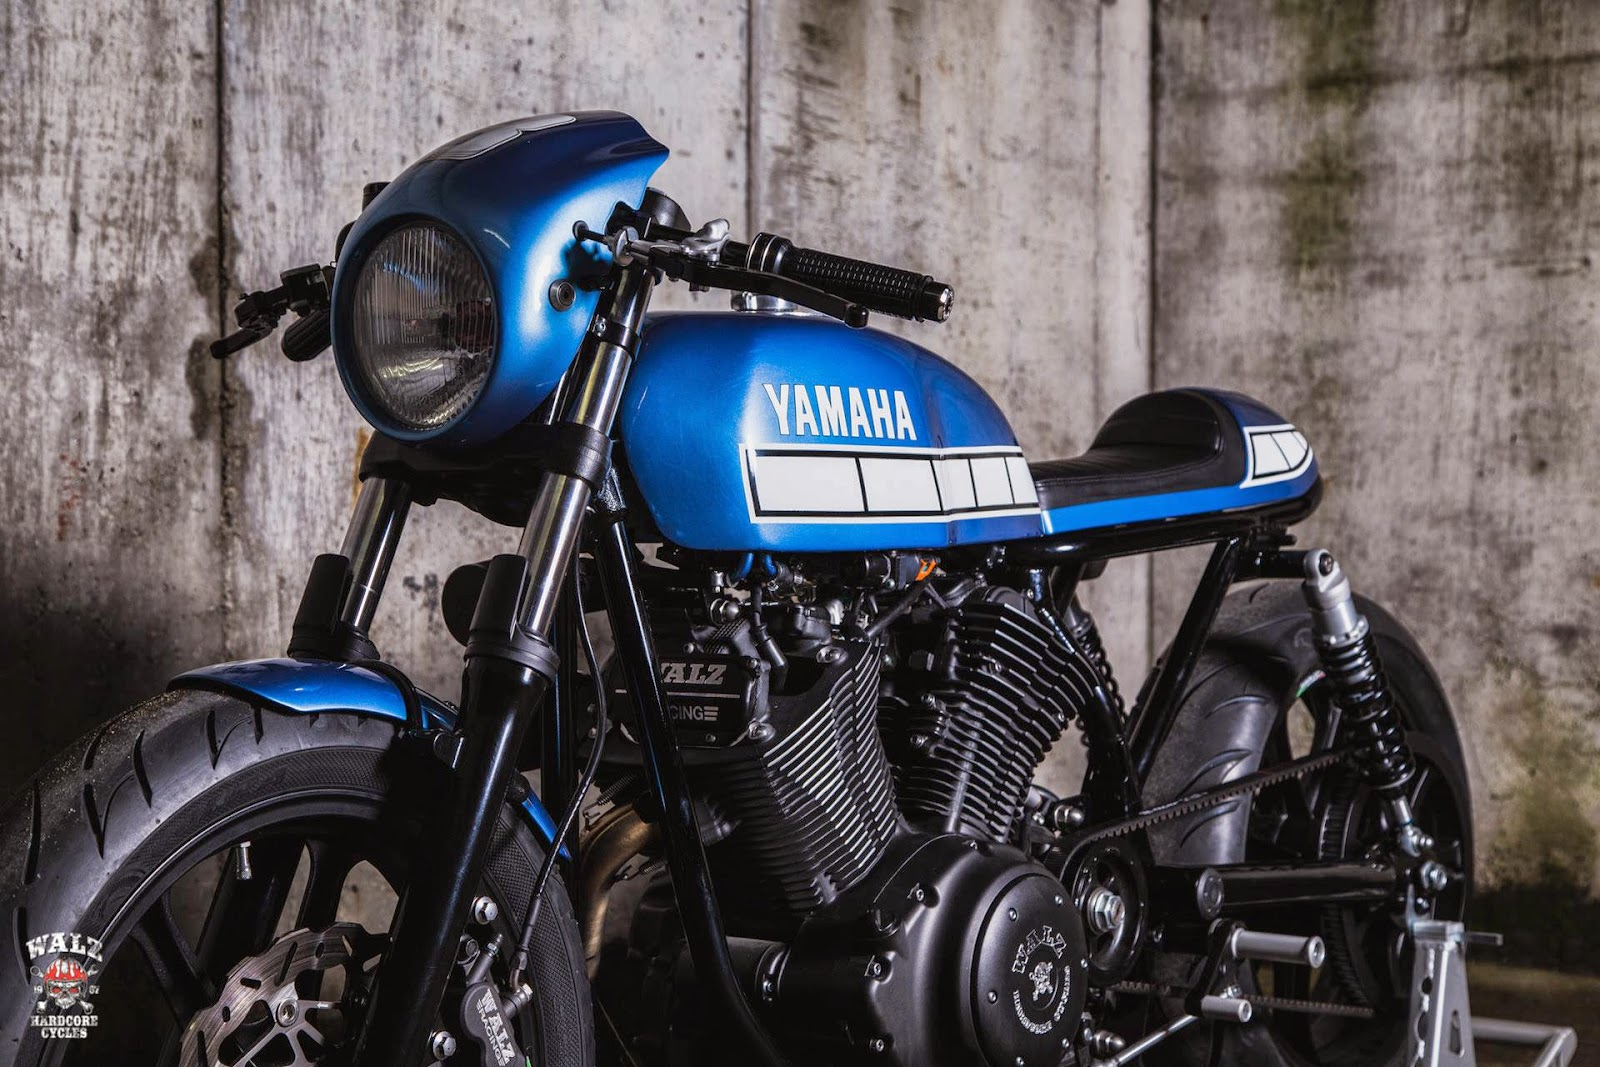 racing caf yamaha xv 950 el rat n asesino by walzwerk racing. Black Bedroom Furniture Sets. Home Design Ideas